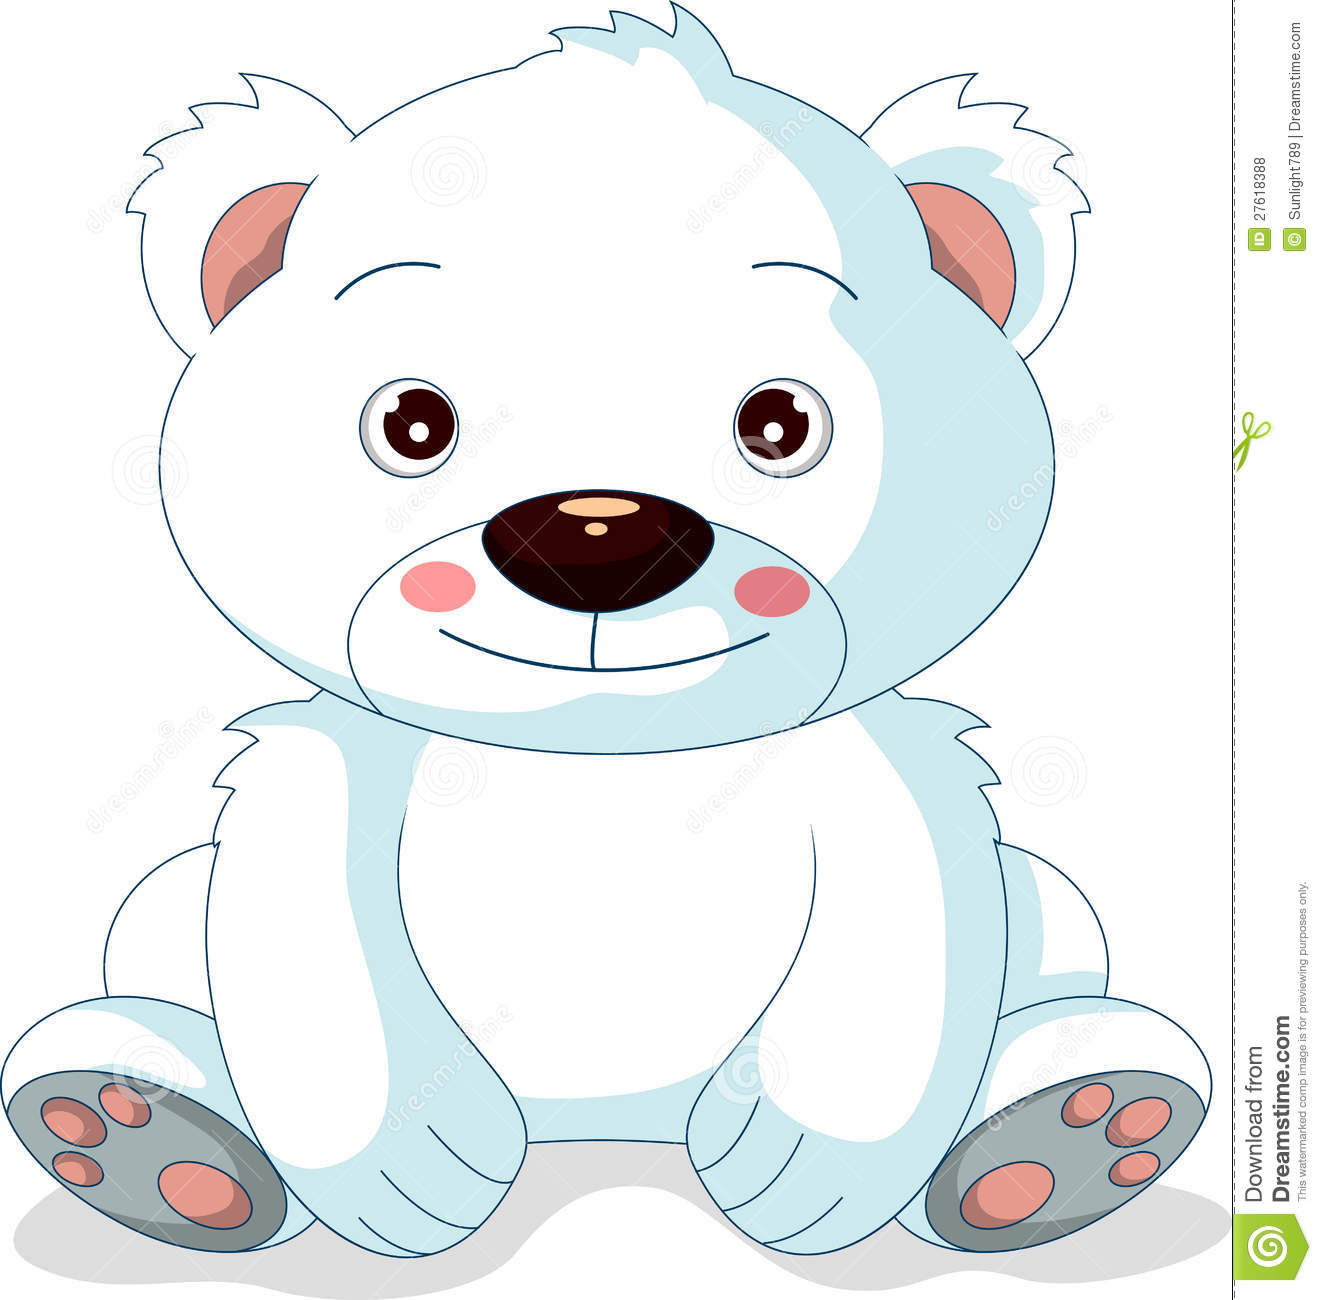 Dessin Anime Mignon D Ours Blanc Illustration Stock Illustration